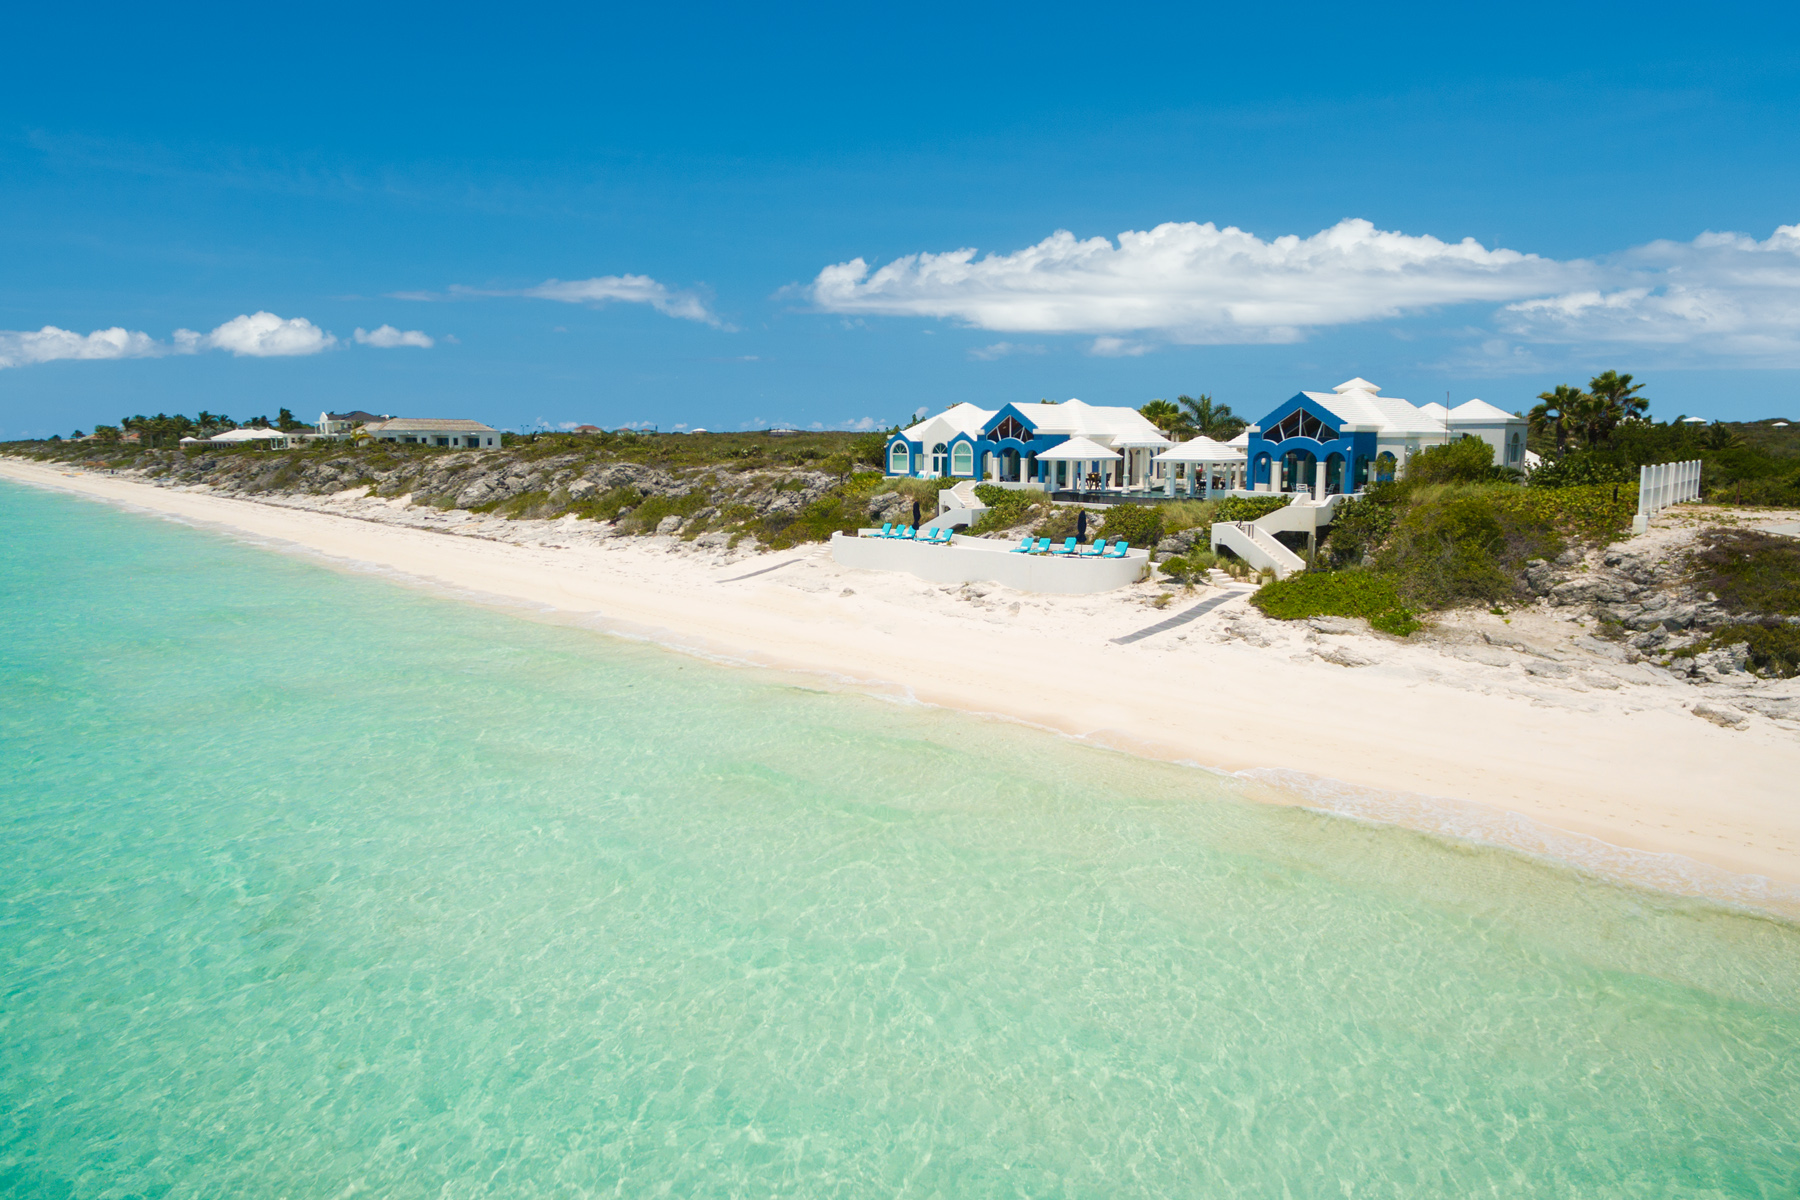 Single Family Home for Sale at Mandalay Beachfront Long Bay, Providenciales TCI Turks And Caicos Islands